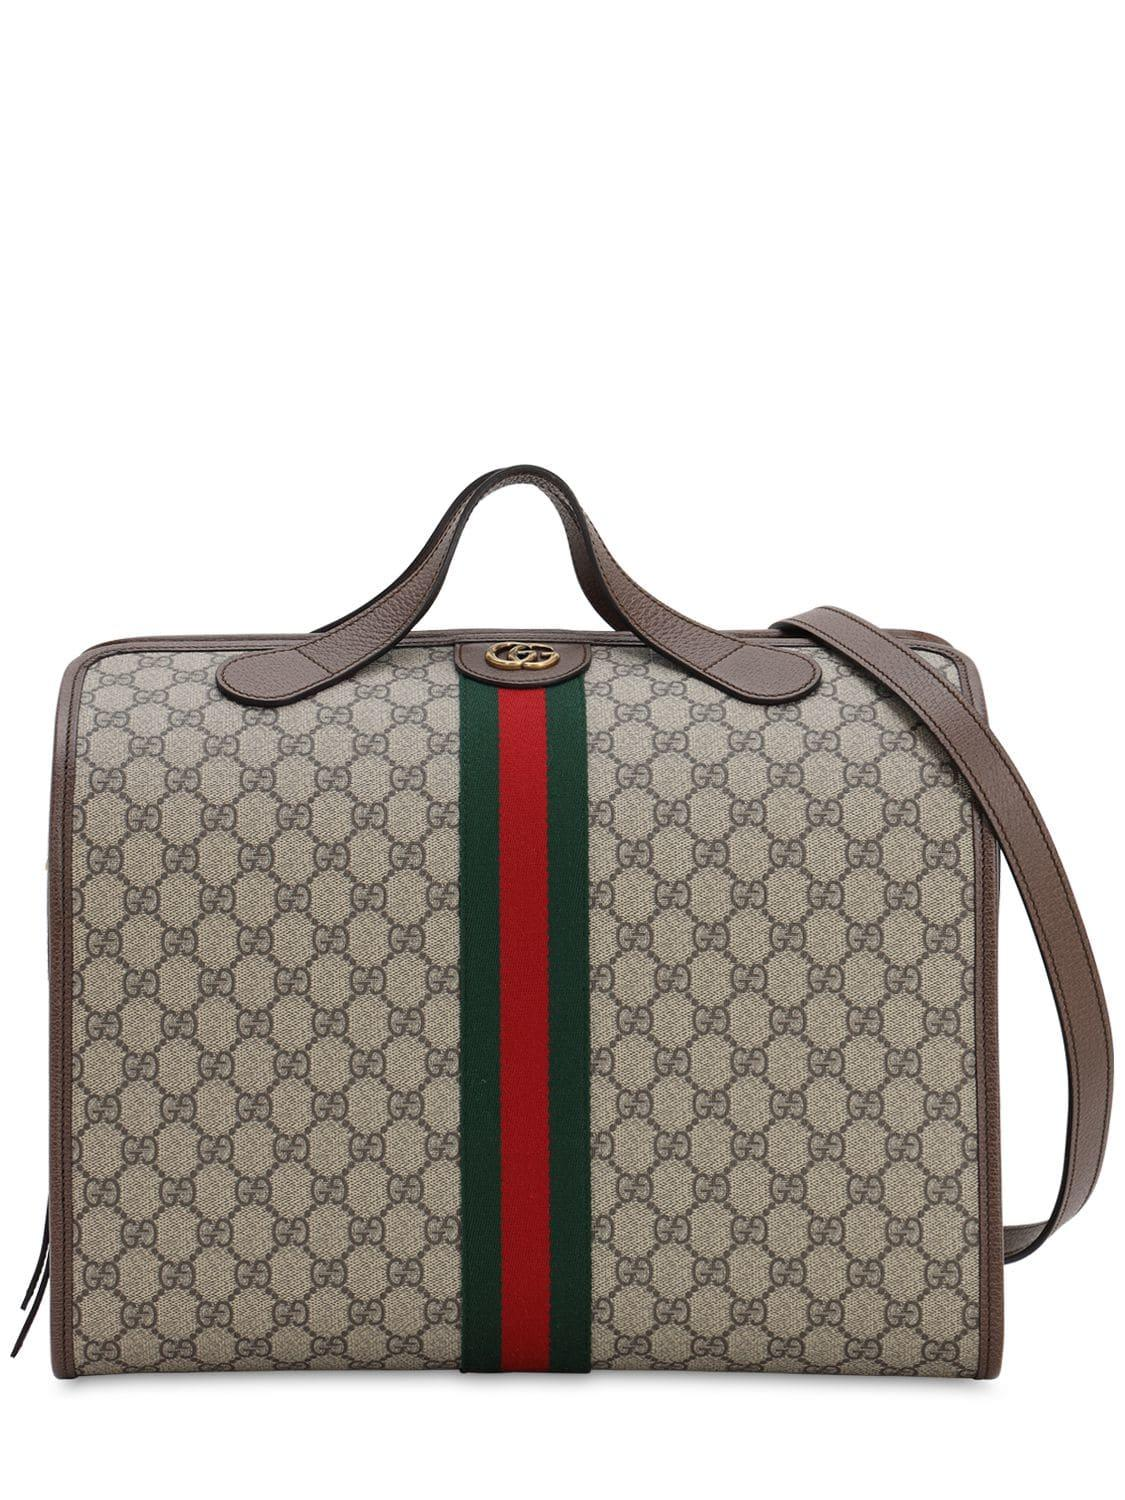 5622c2823625 Lyst - Gucci Gg Supreme Duffle Bag for Men